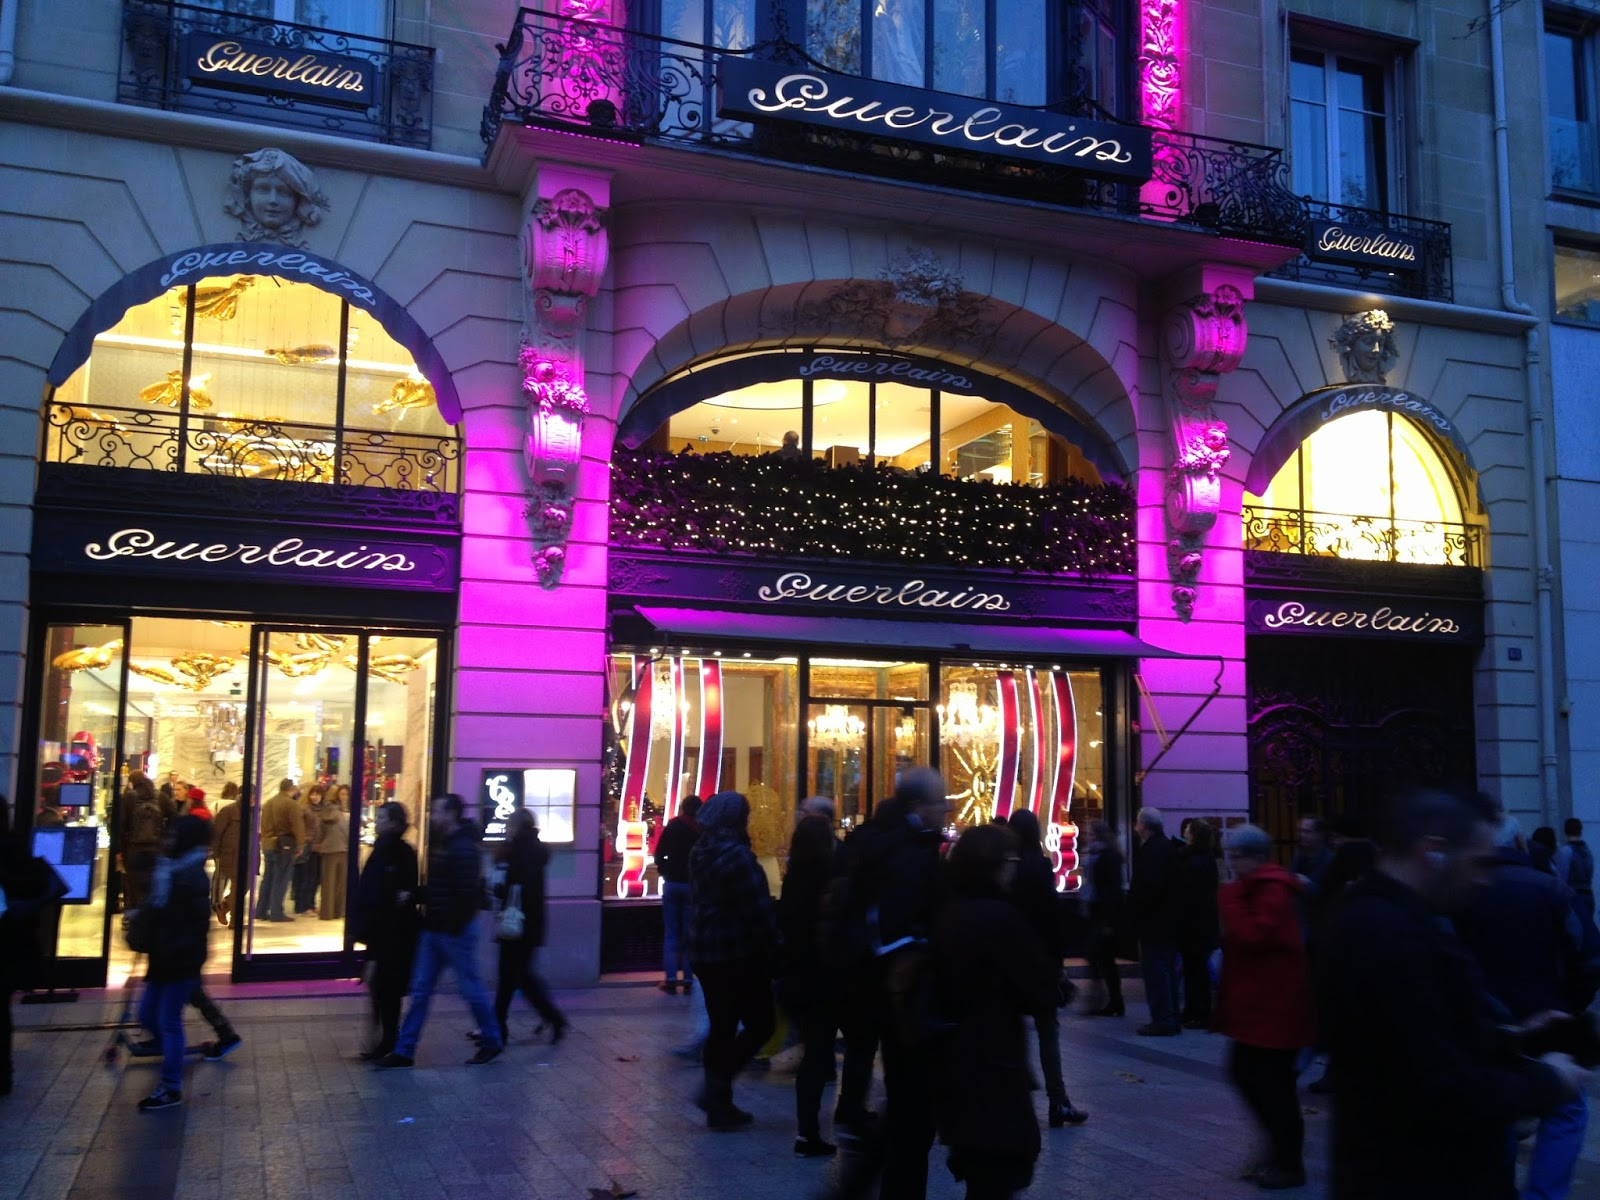 Guerlain holiday decorations, Champs-Elysées, Paris